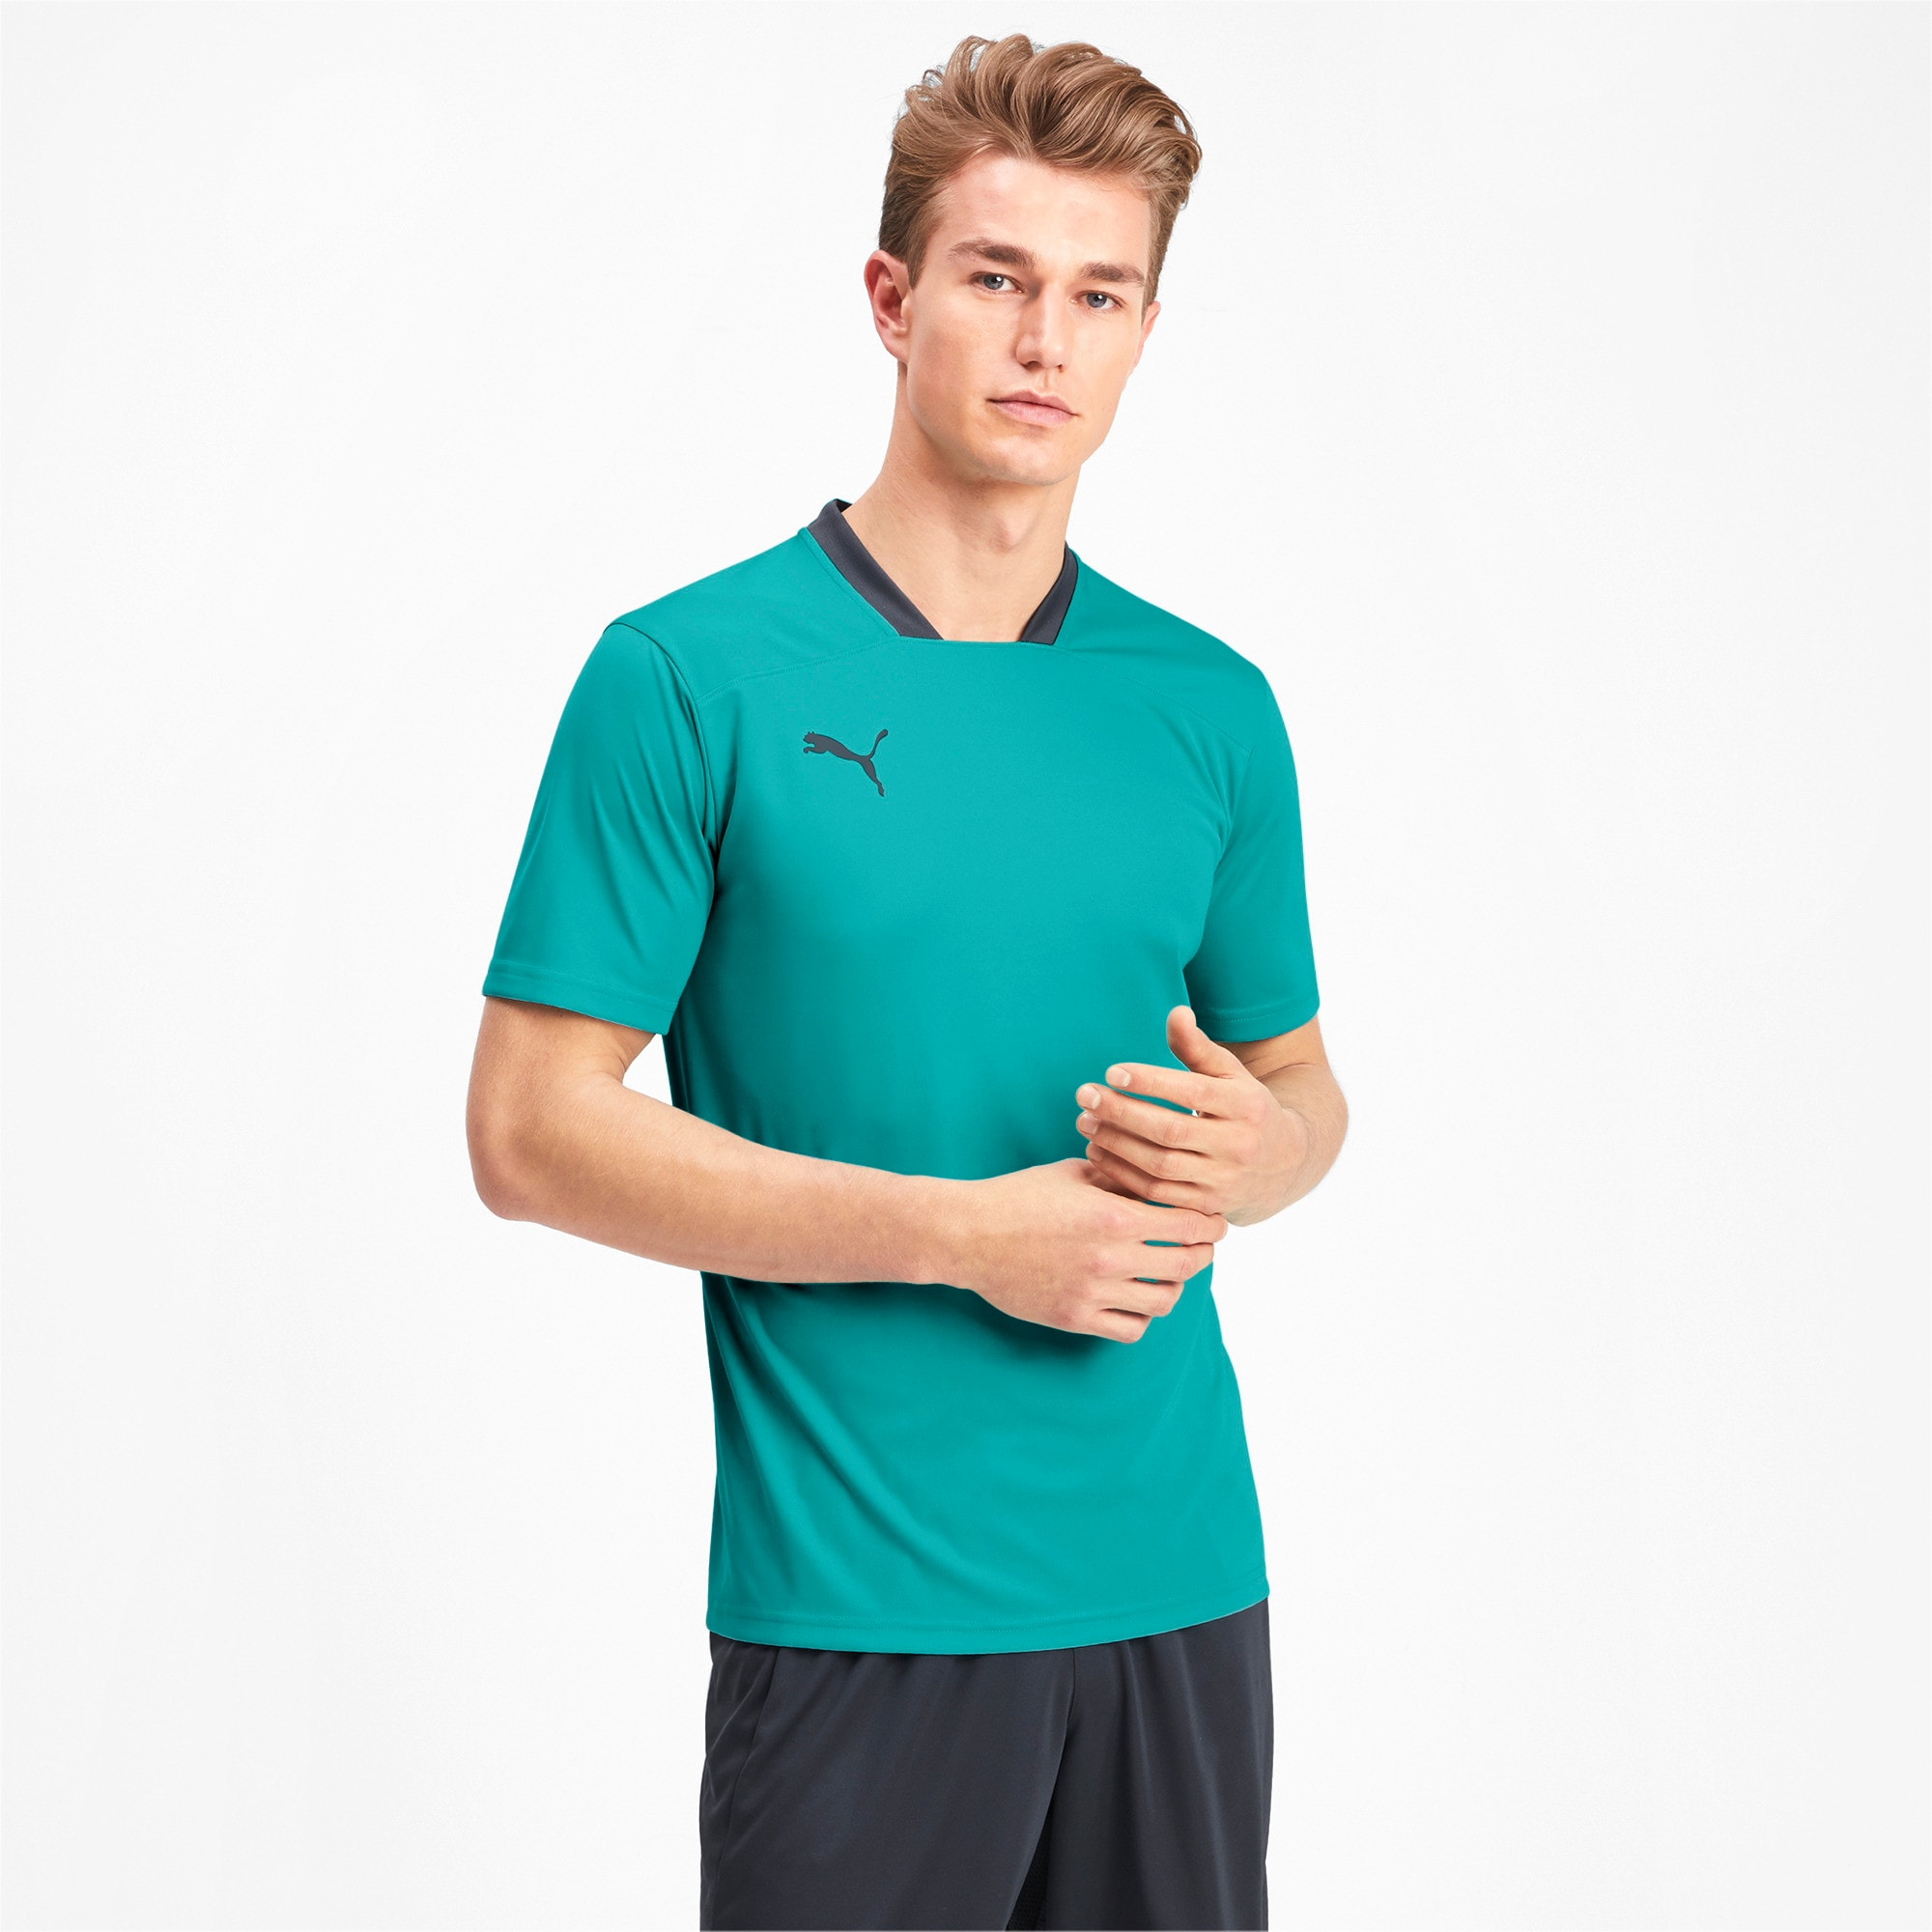 Thumbnail 1 of Men's Training Tee, Blue Turquoise-Ebony, medium